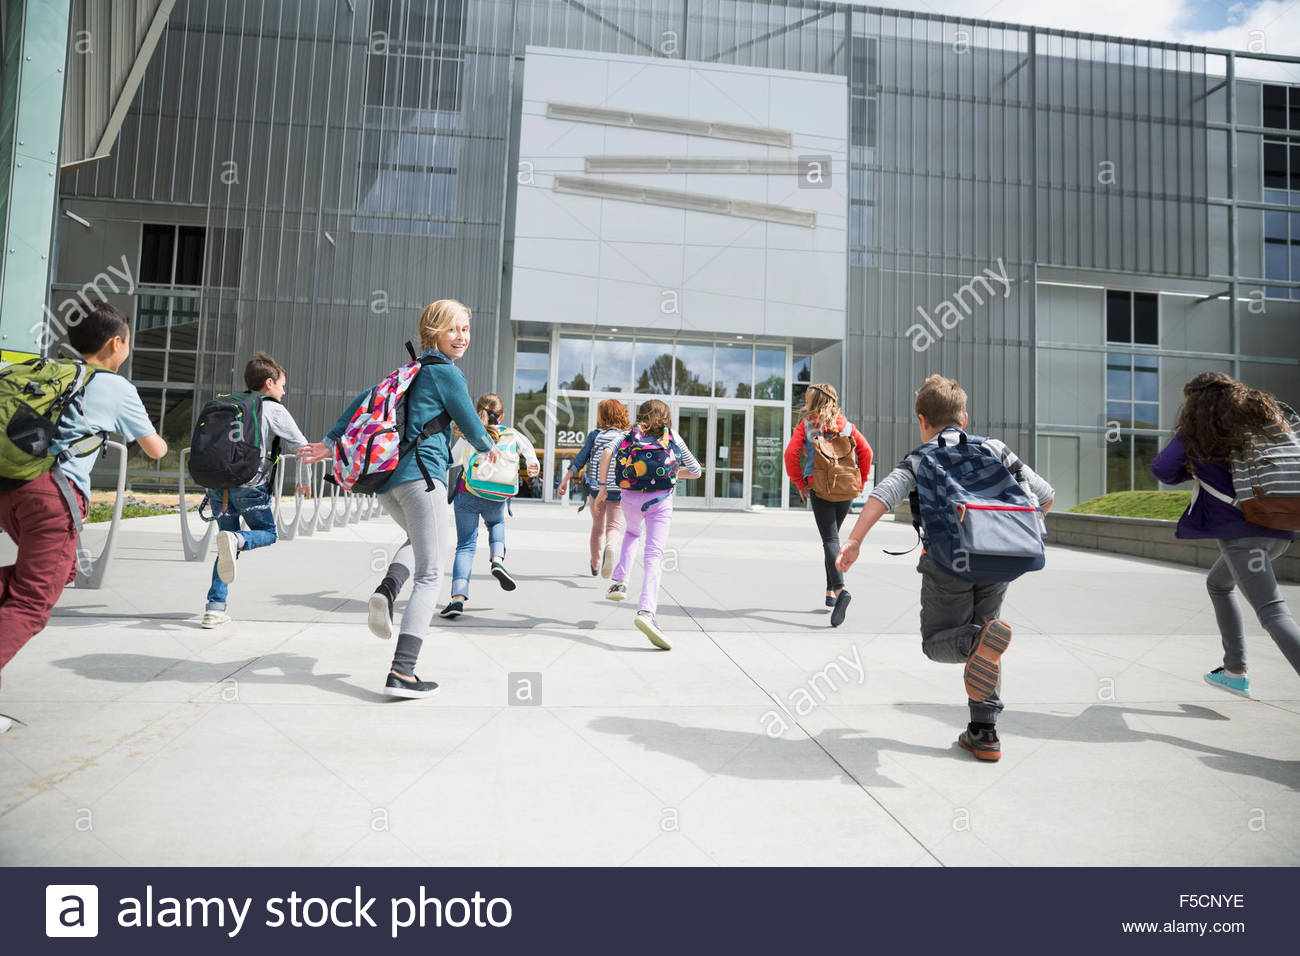 Enthusiastic school kids running toward science center entrance - Stock Image